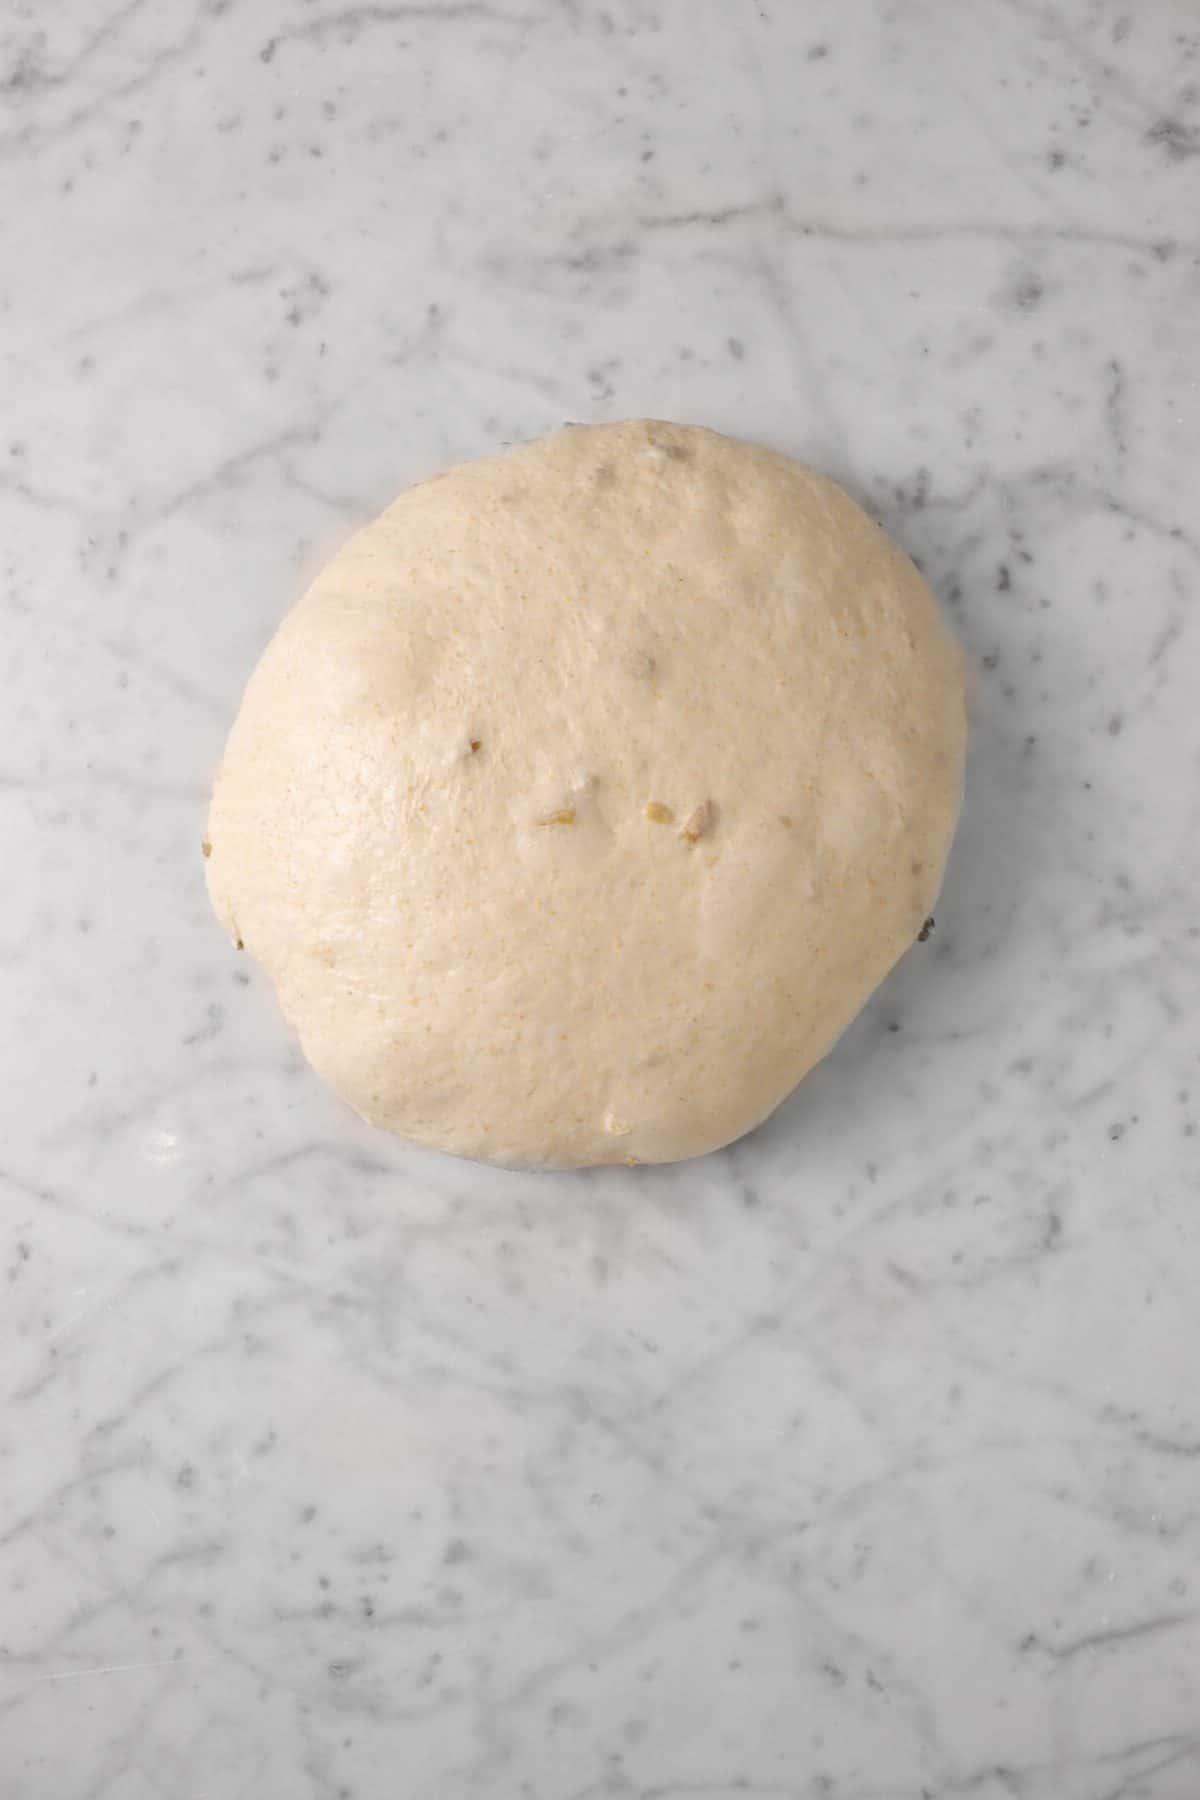 dough smoothed out into a small boule on a marble counter